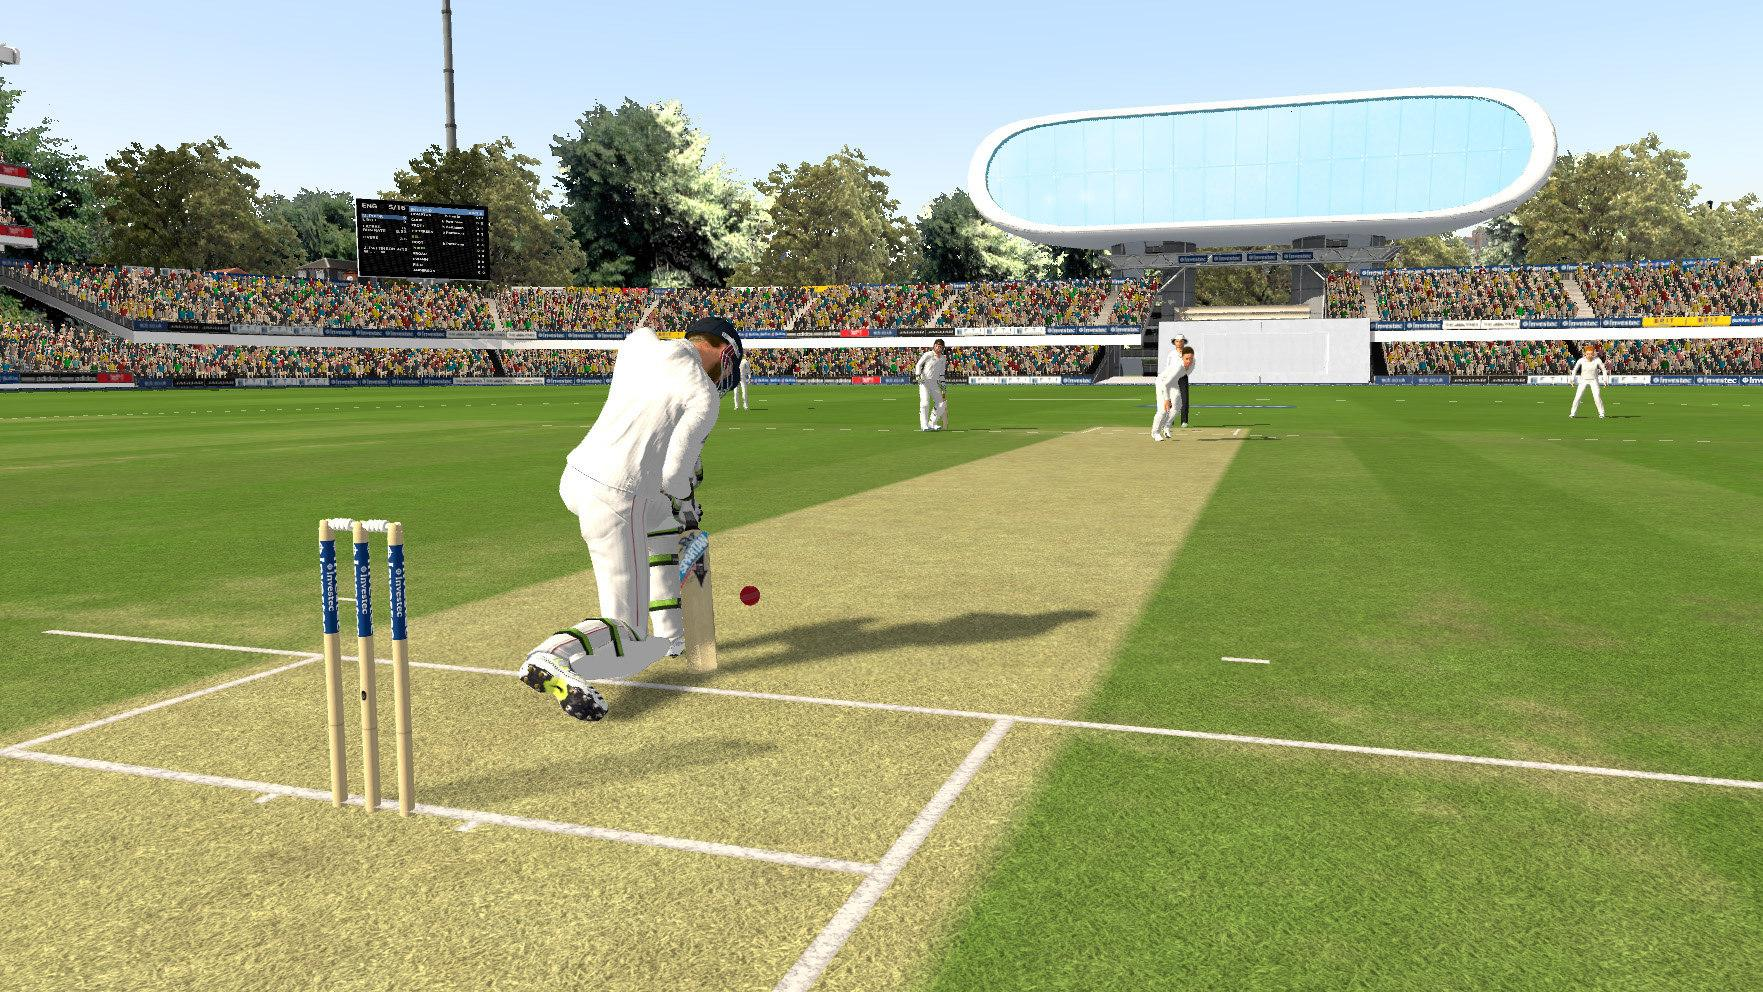 Ashes Cricket 2013 iOS/APK Version Full Free Download